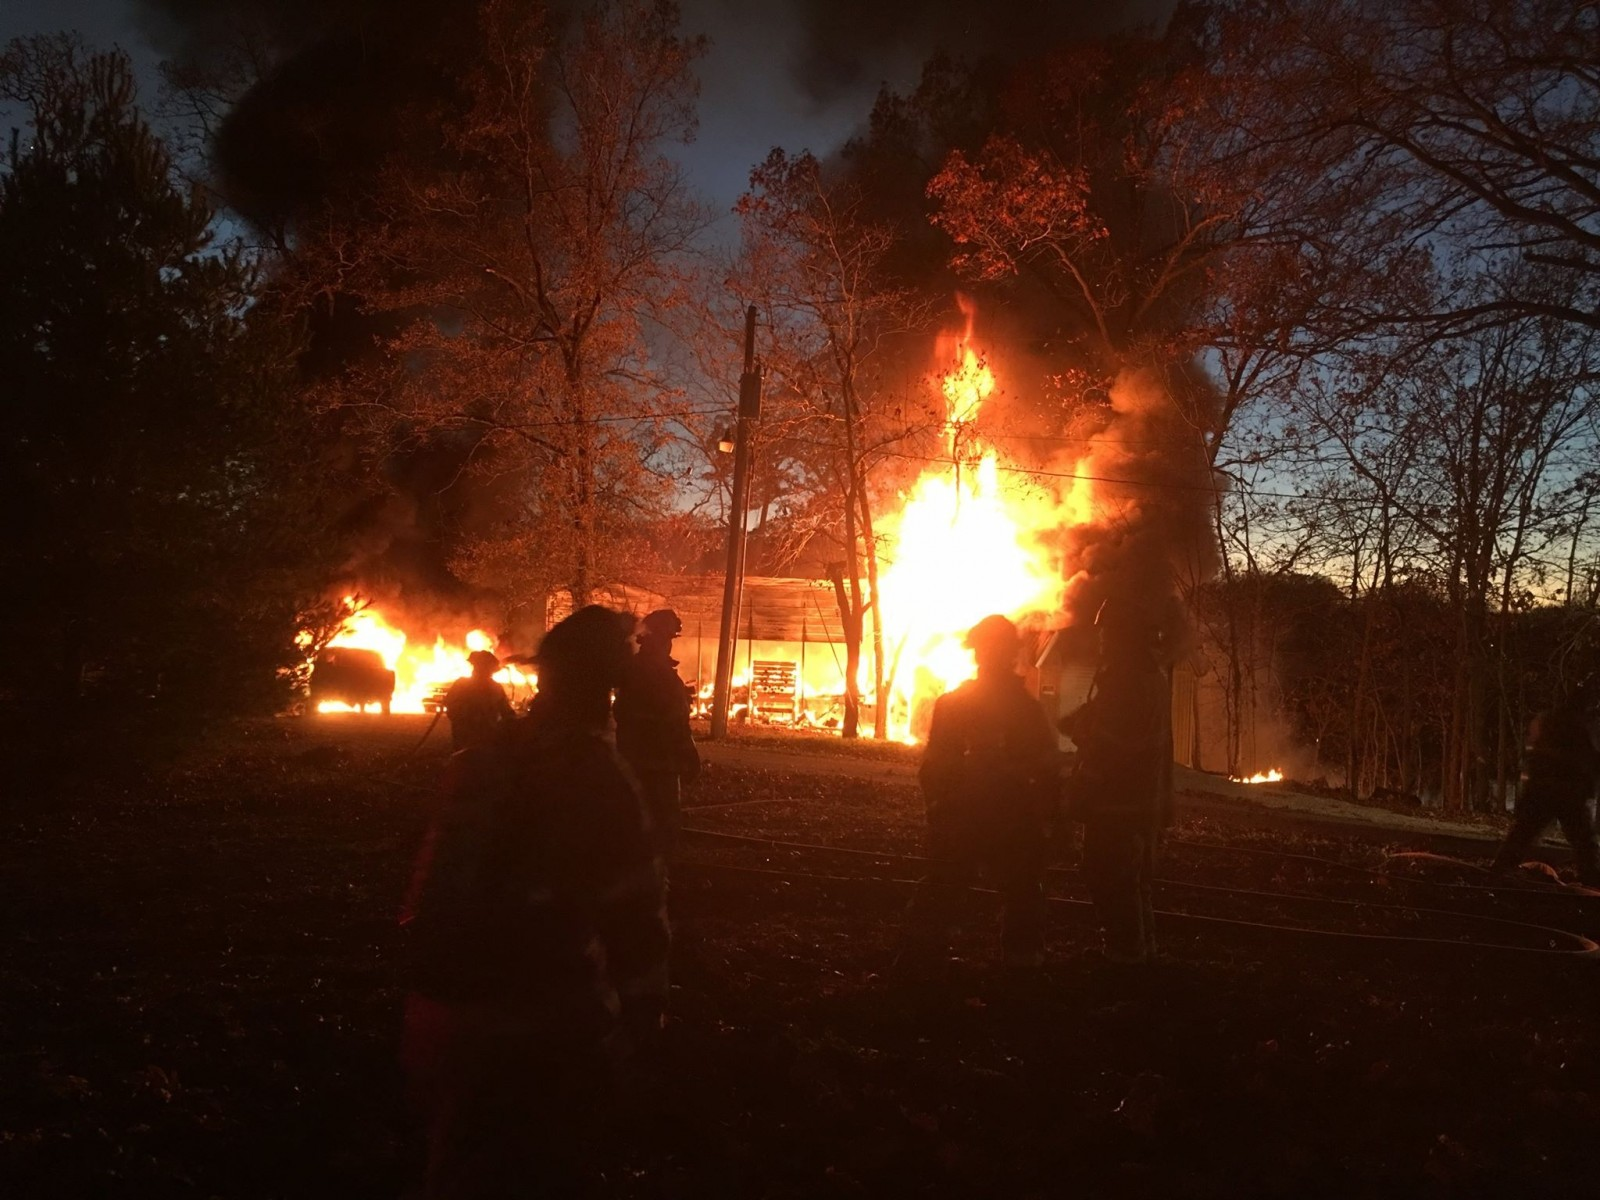 Firefighters attempt to contain the blaze at a Pana Lake residence on Sunday. Photo Courtesy of a Pana Police Department Press Release.